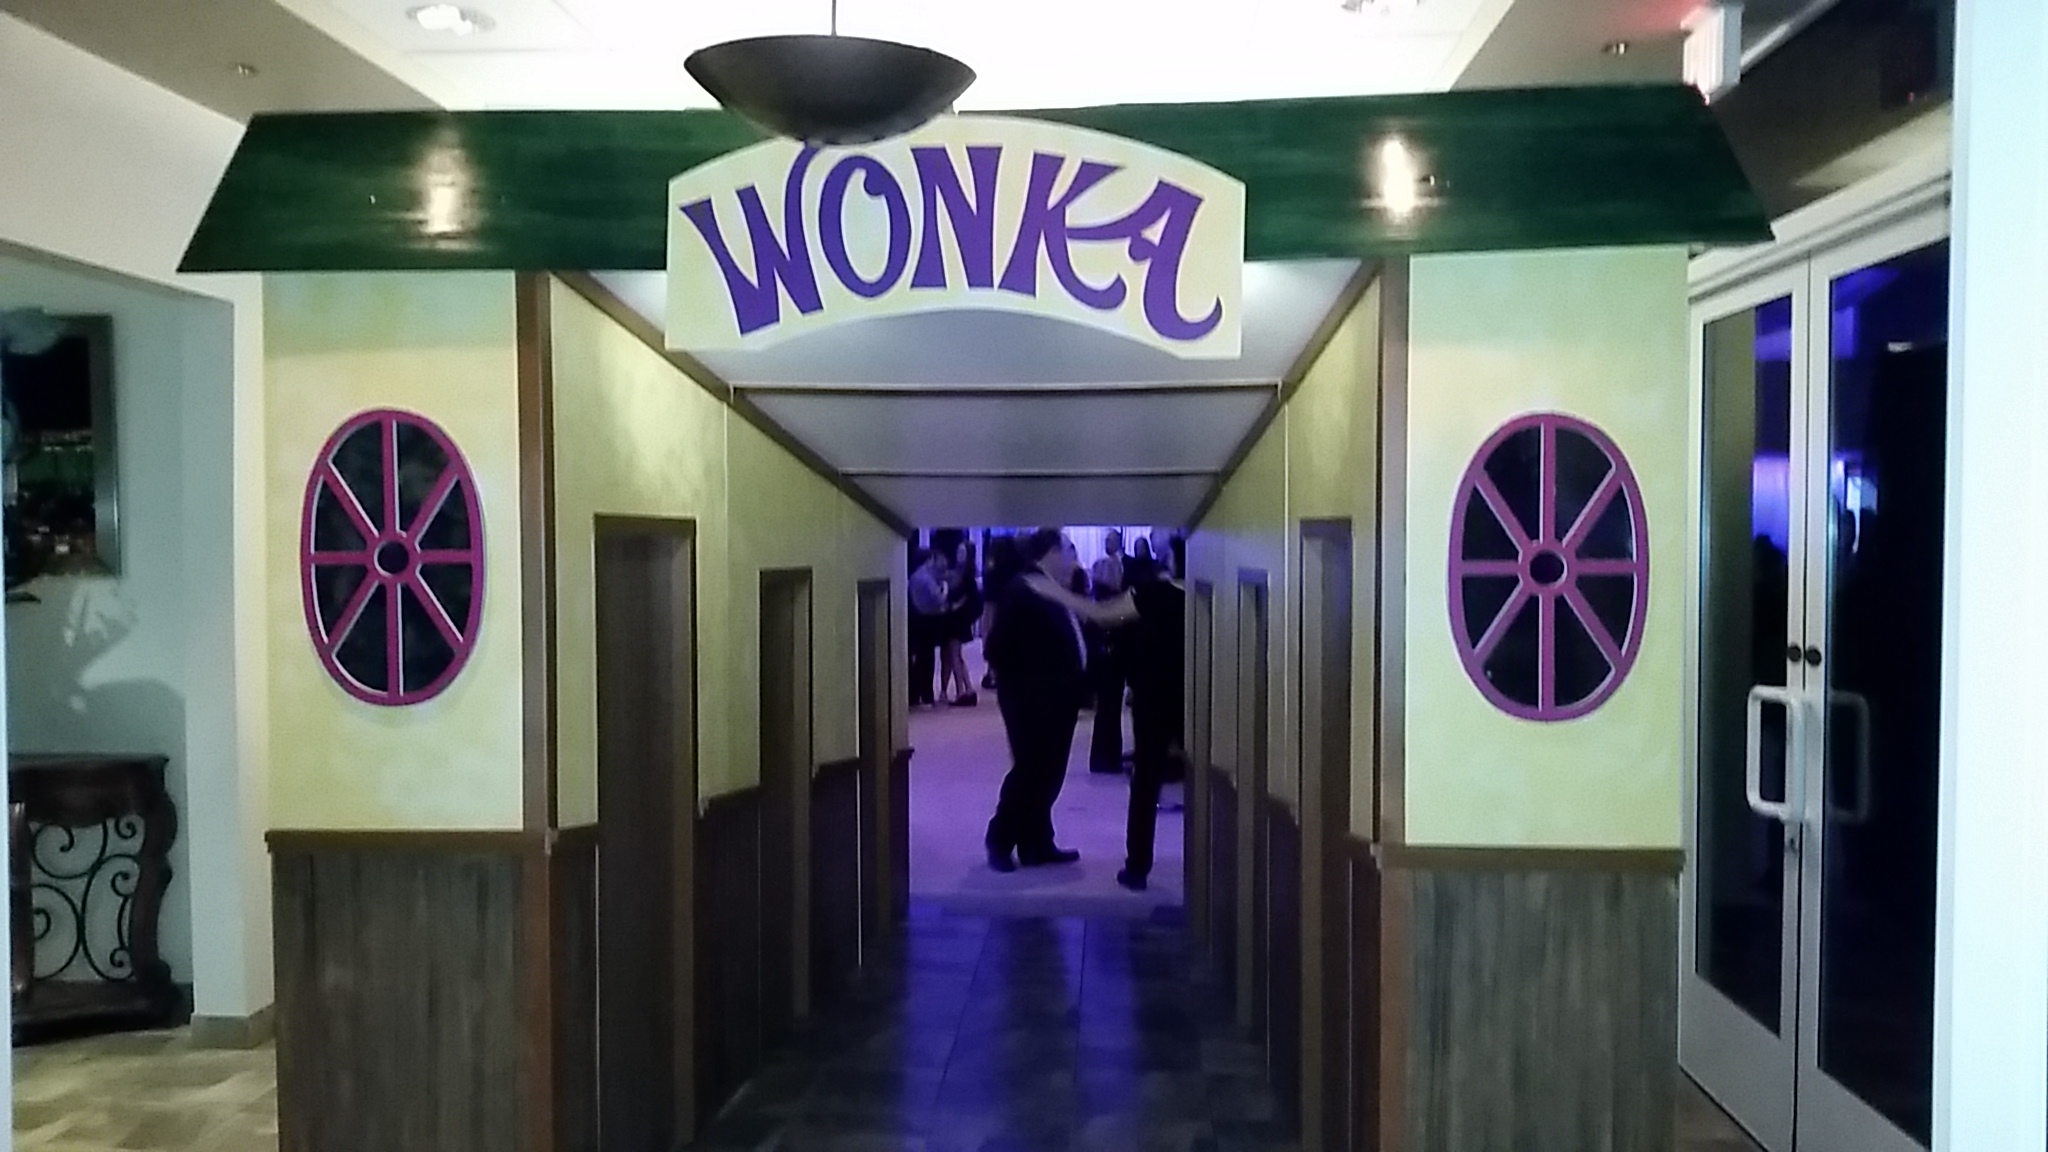 Willy Wonka Party - Amusement, Exhibit & Event Services (AE&ES)